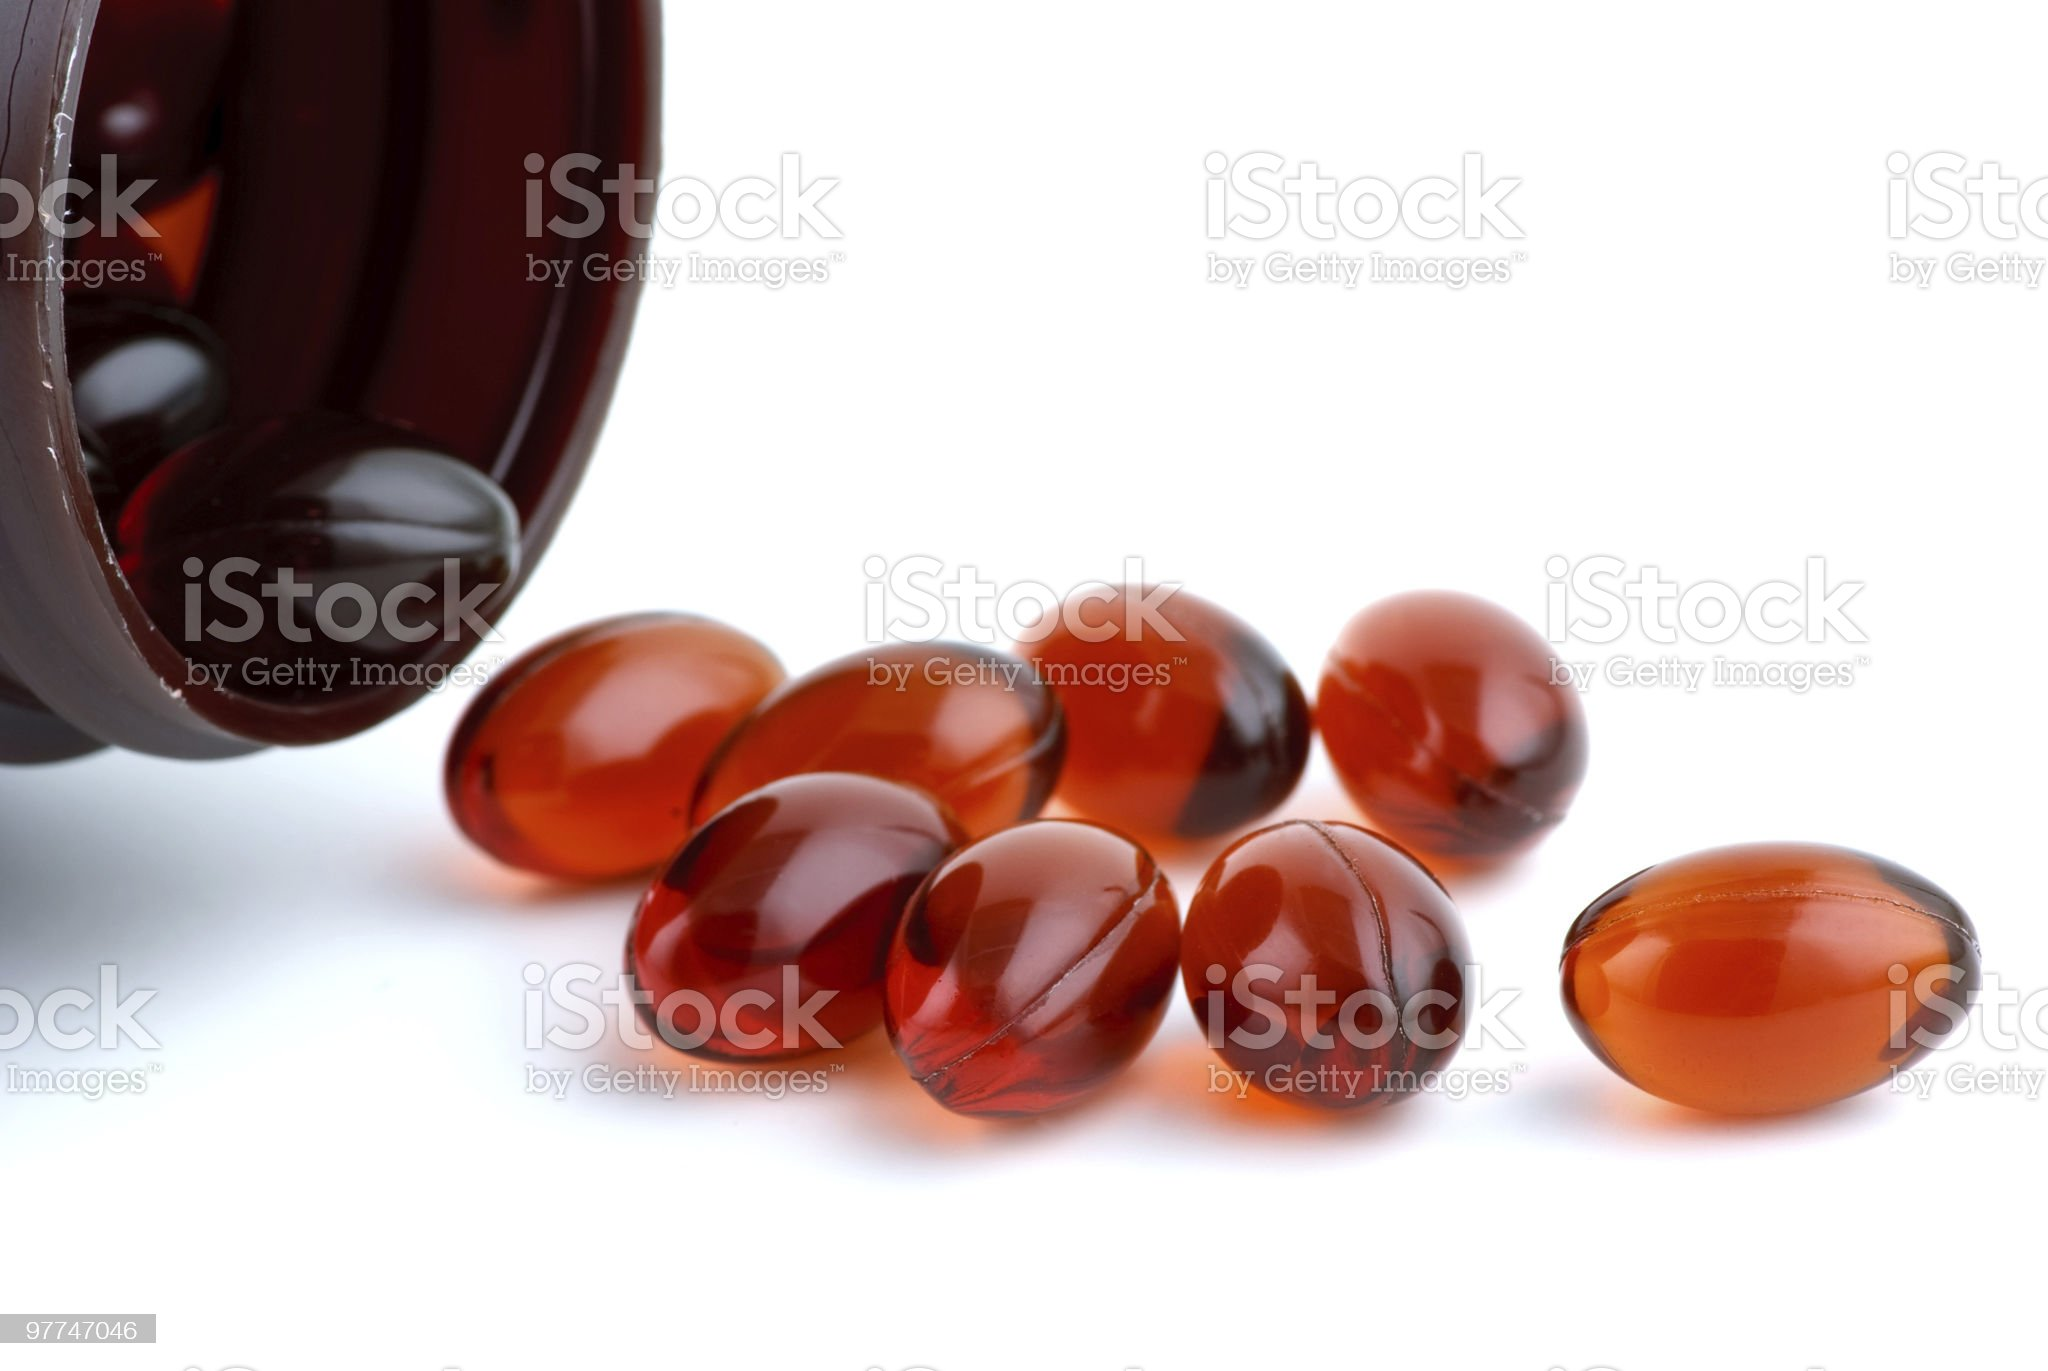 Few lecithins capsules near an open bottle royalty-free stock photo